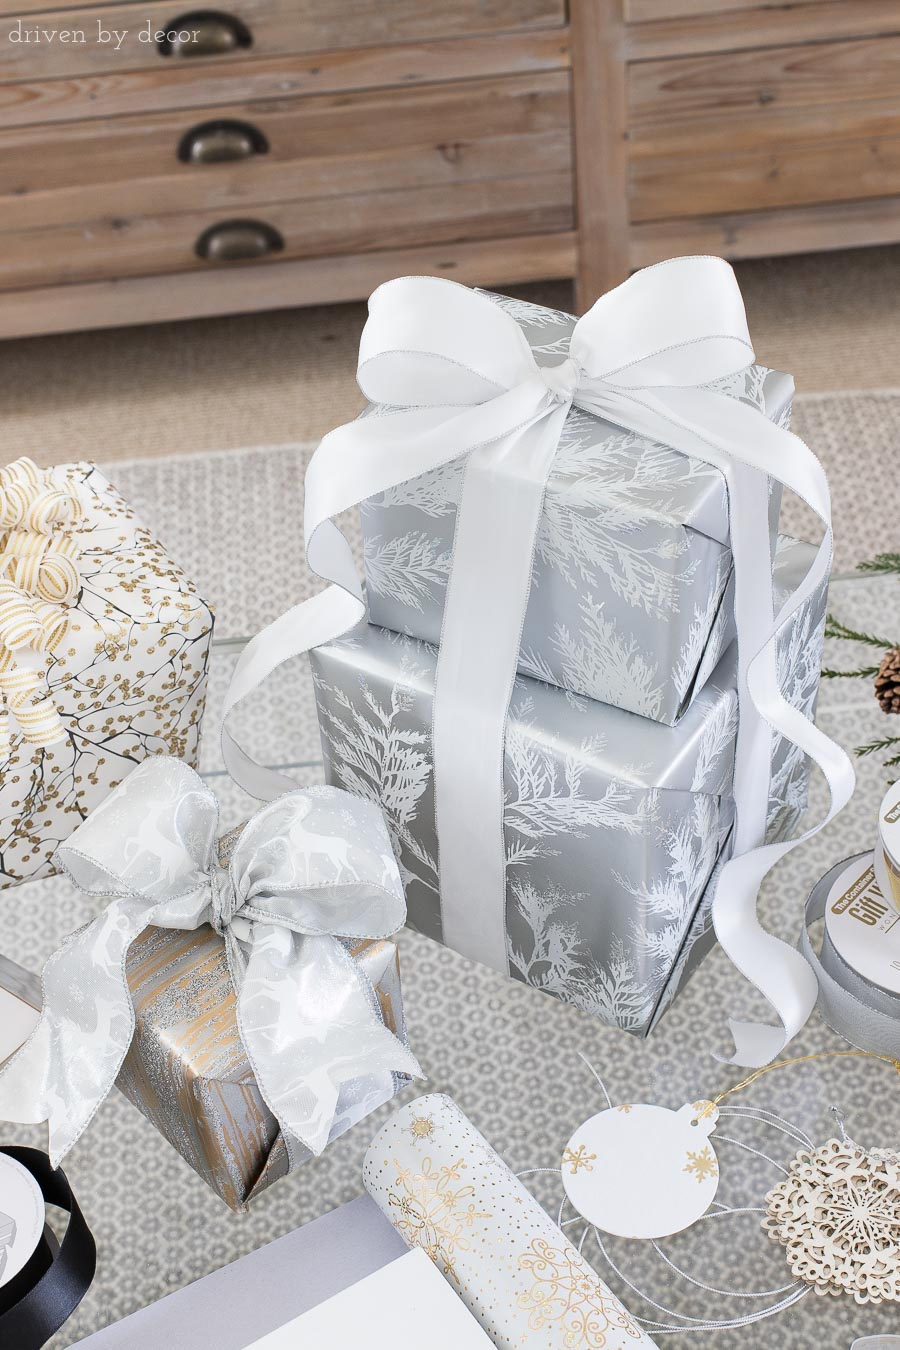 Great tips on where to buy the best ribbon for wrapping Christmas presents!